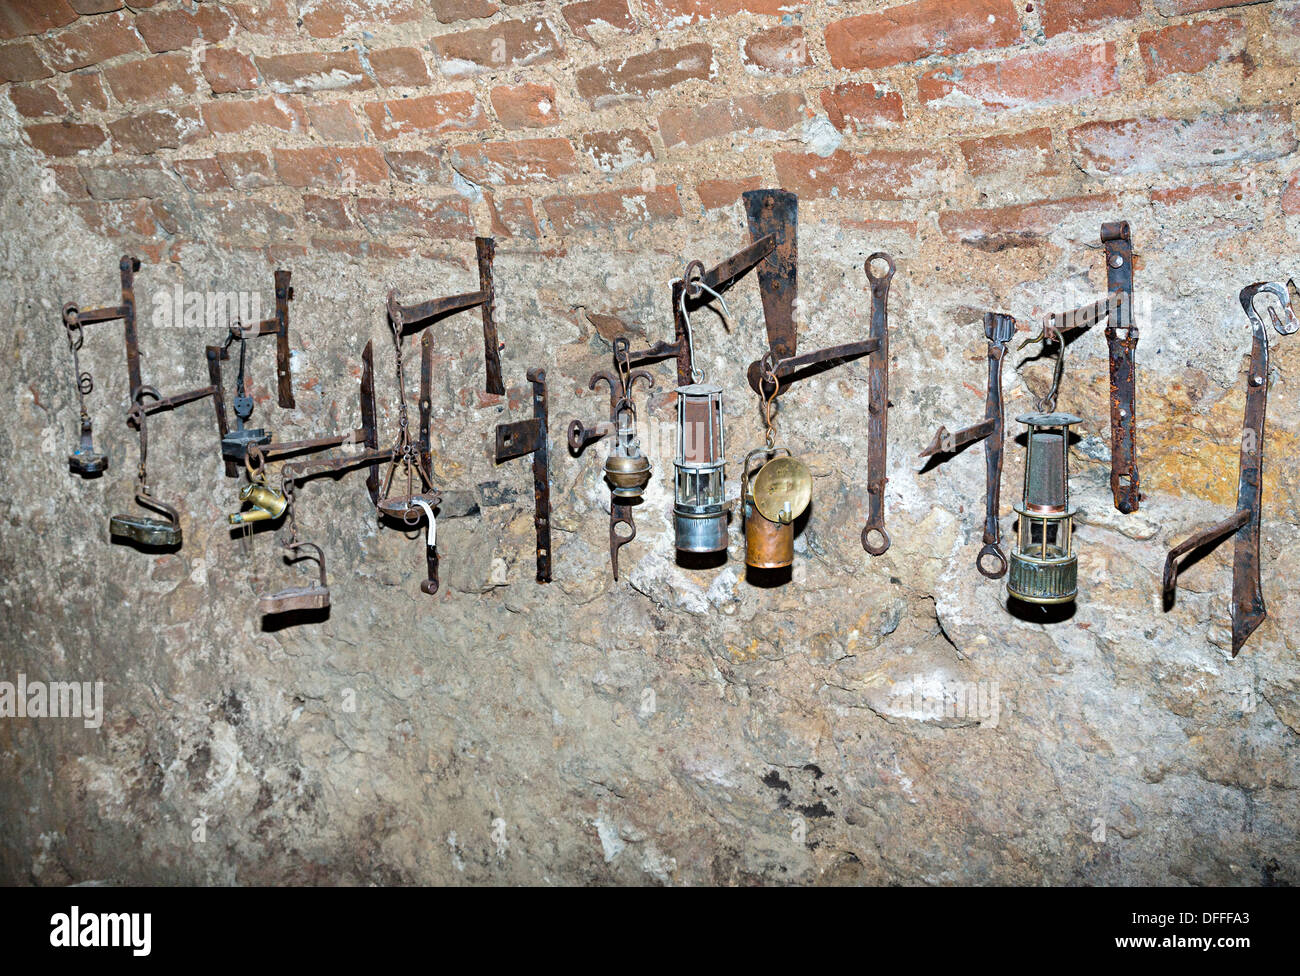 A display of old lamps in the underground Labyrinth, Brno, Czech Republic - Stock Image